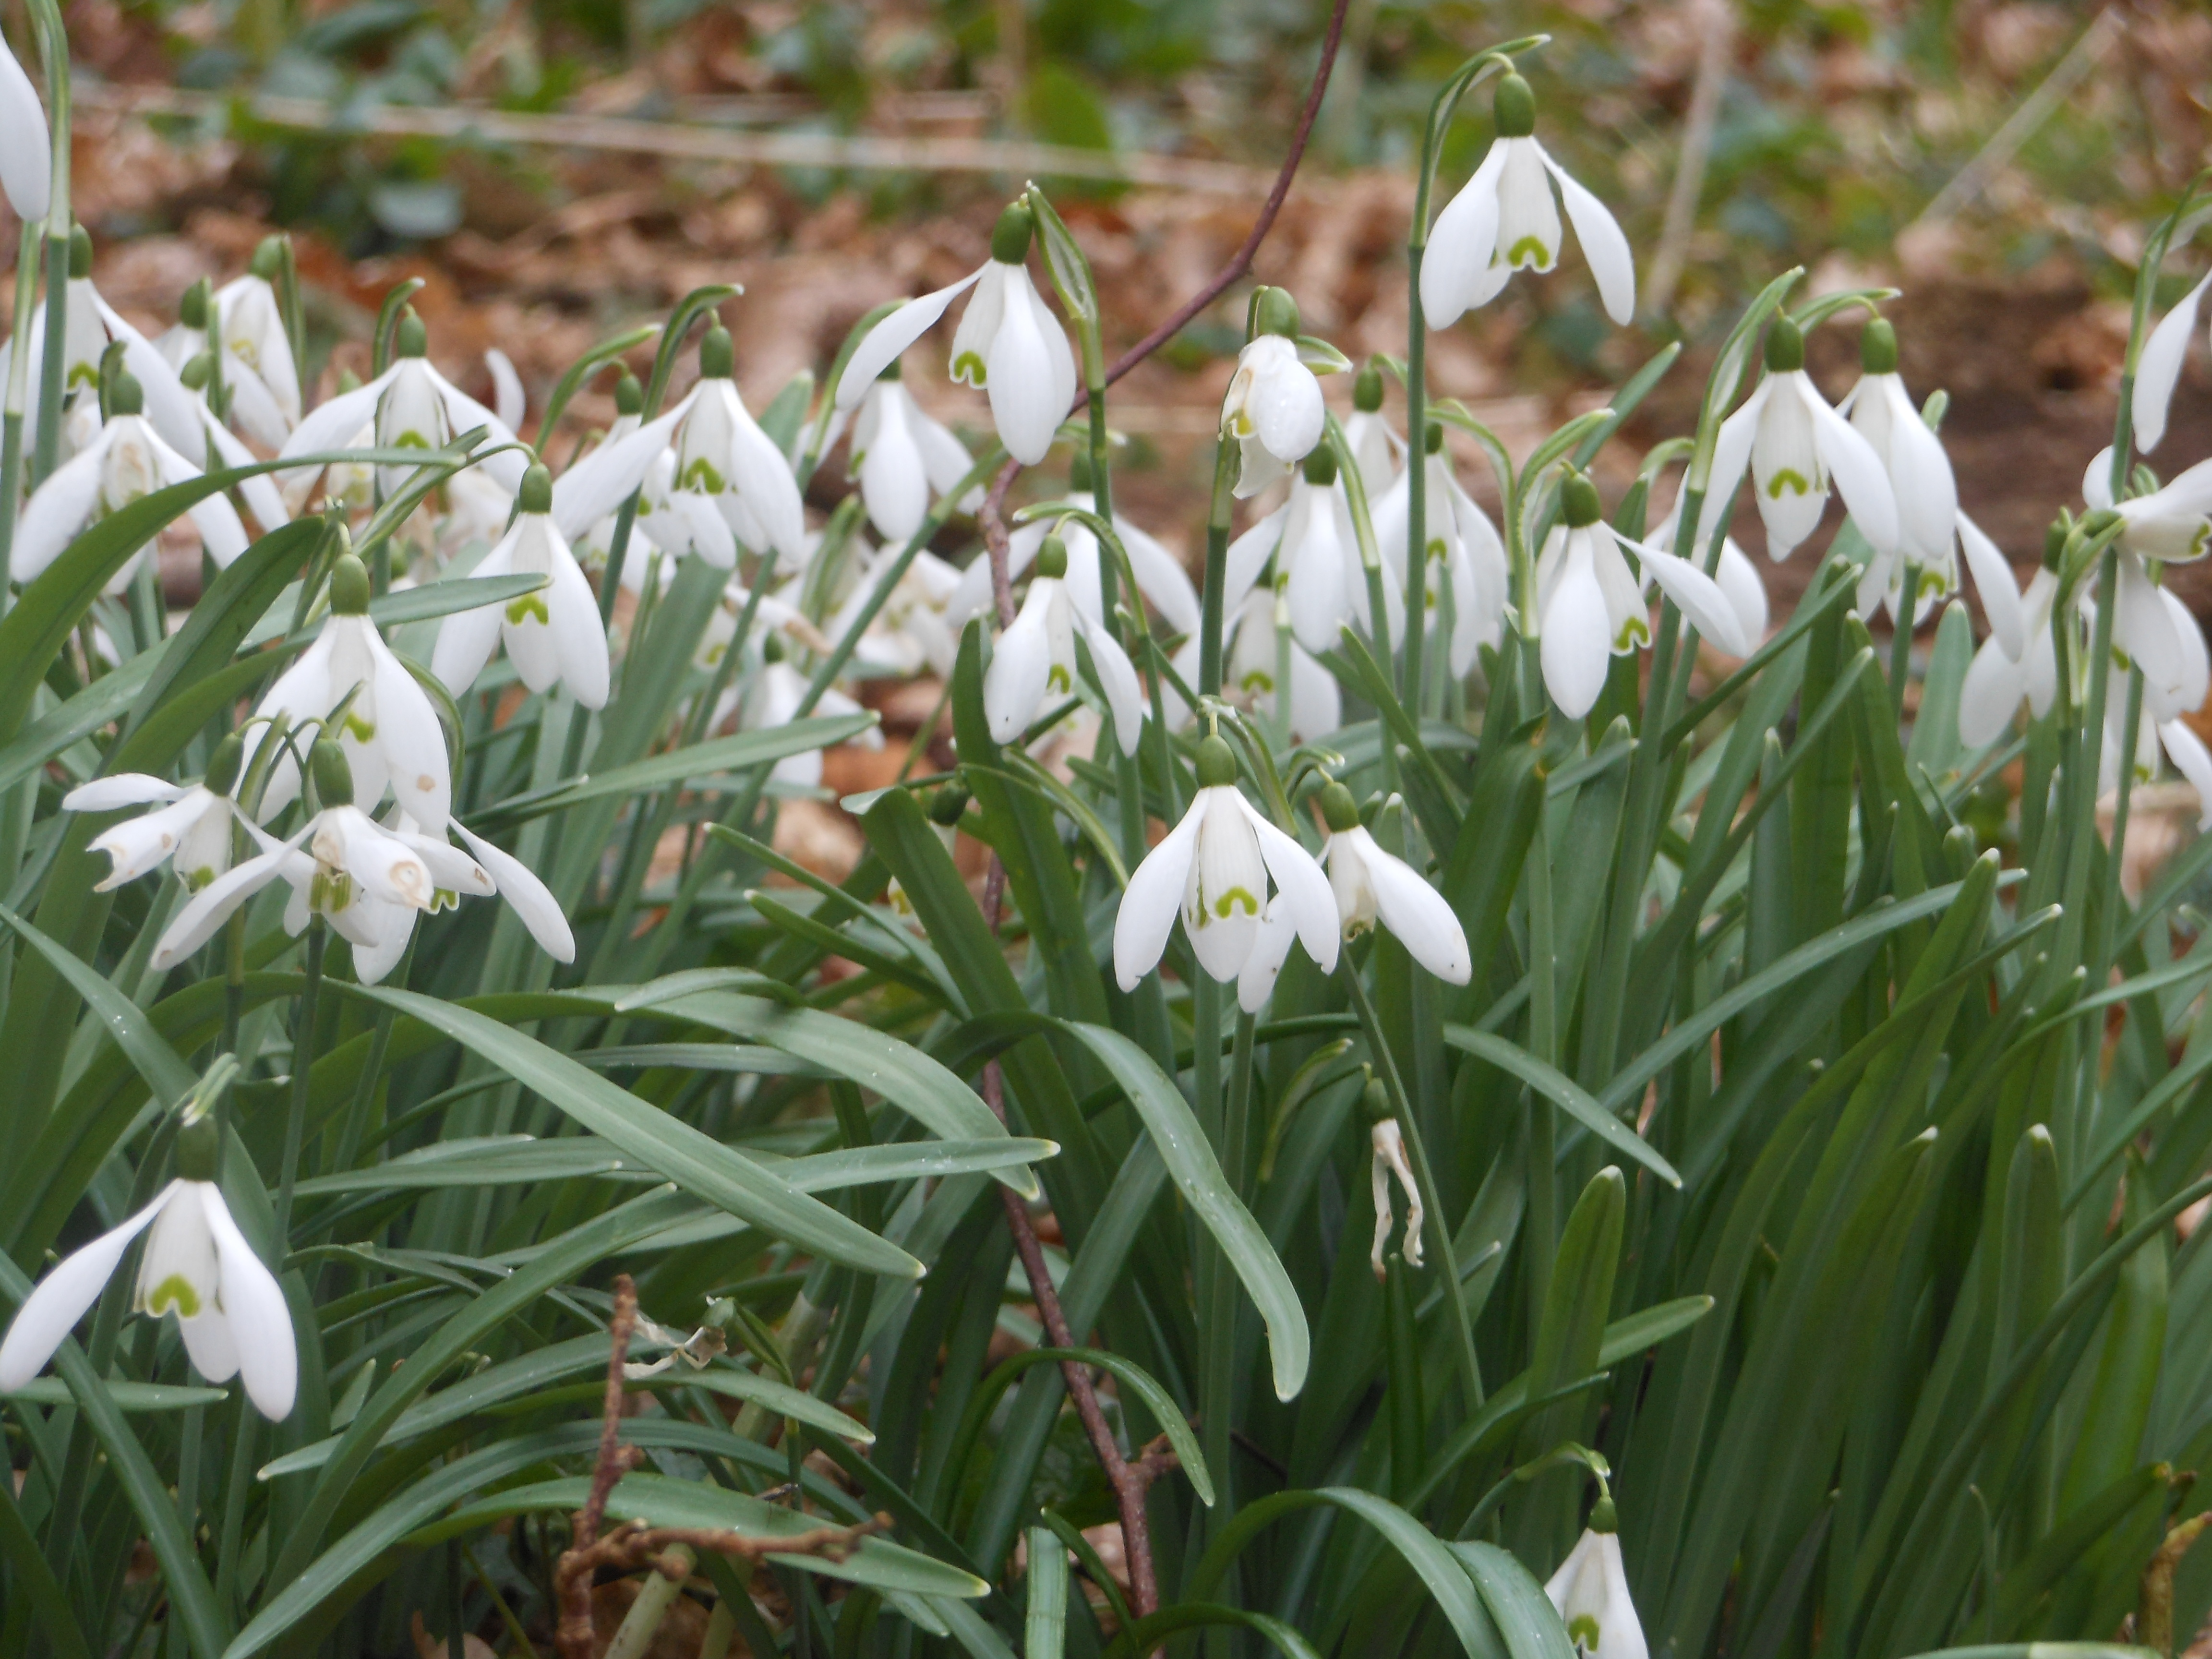 Free stock photo 12523 late winter early spring 6 freeimageslive plate winter flowers norfolk uk snowdropsp mightylinksfo